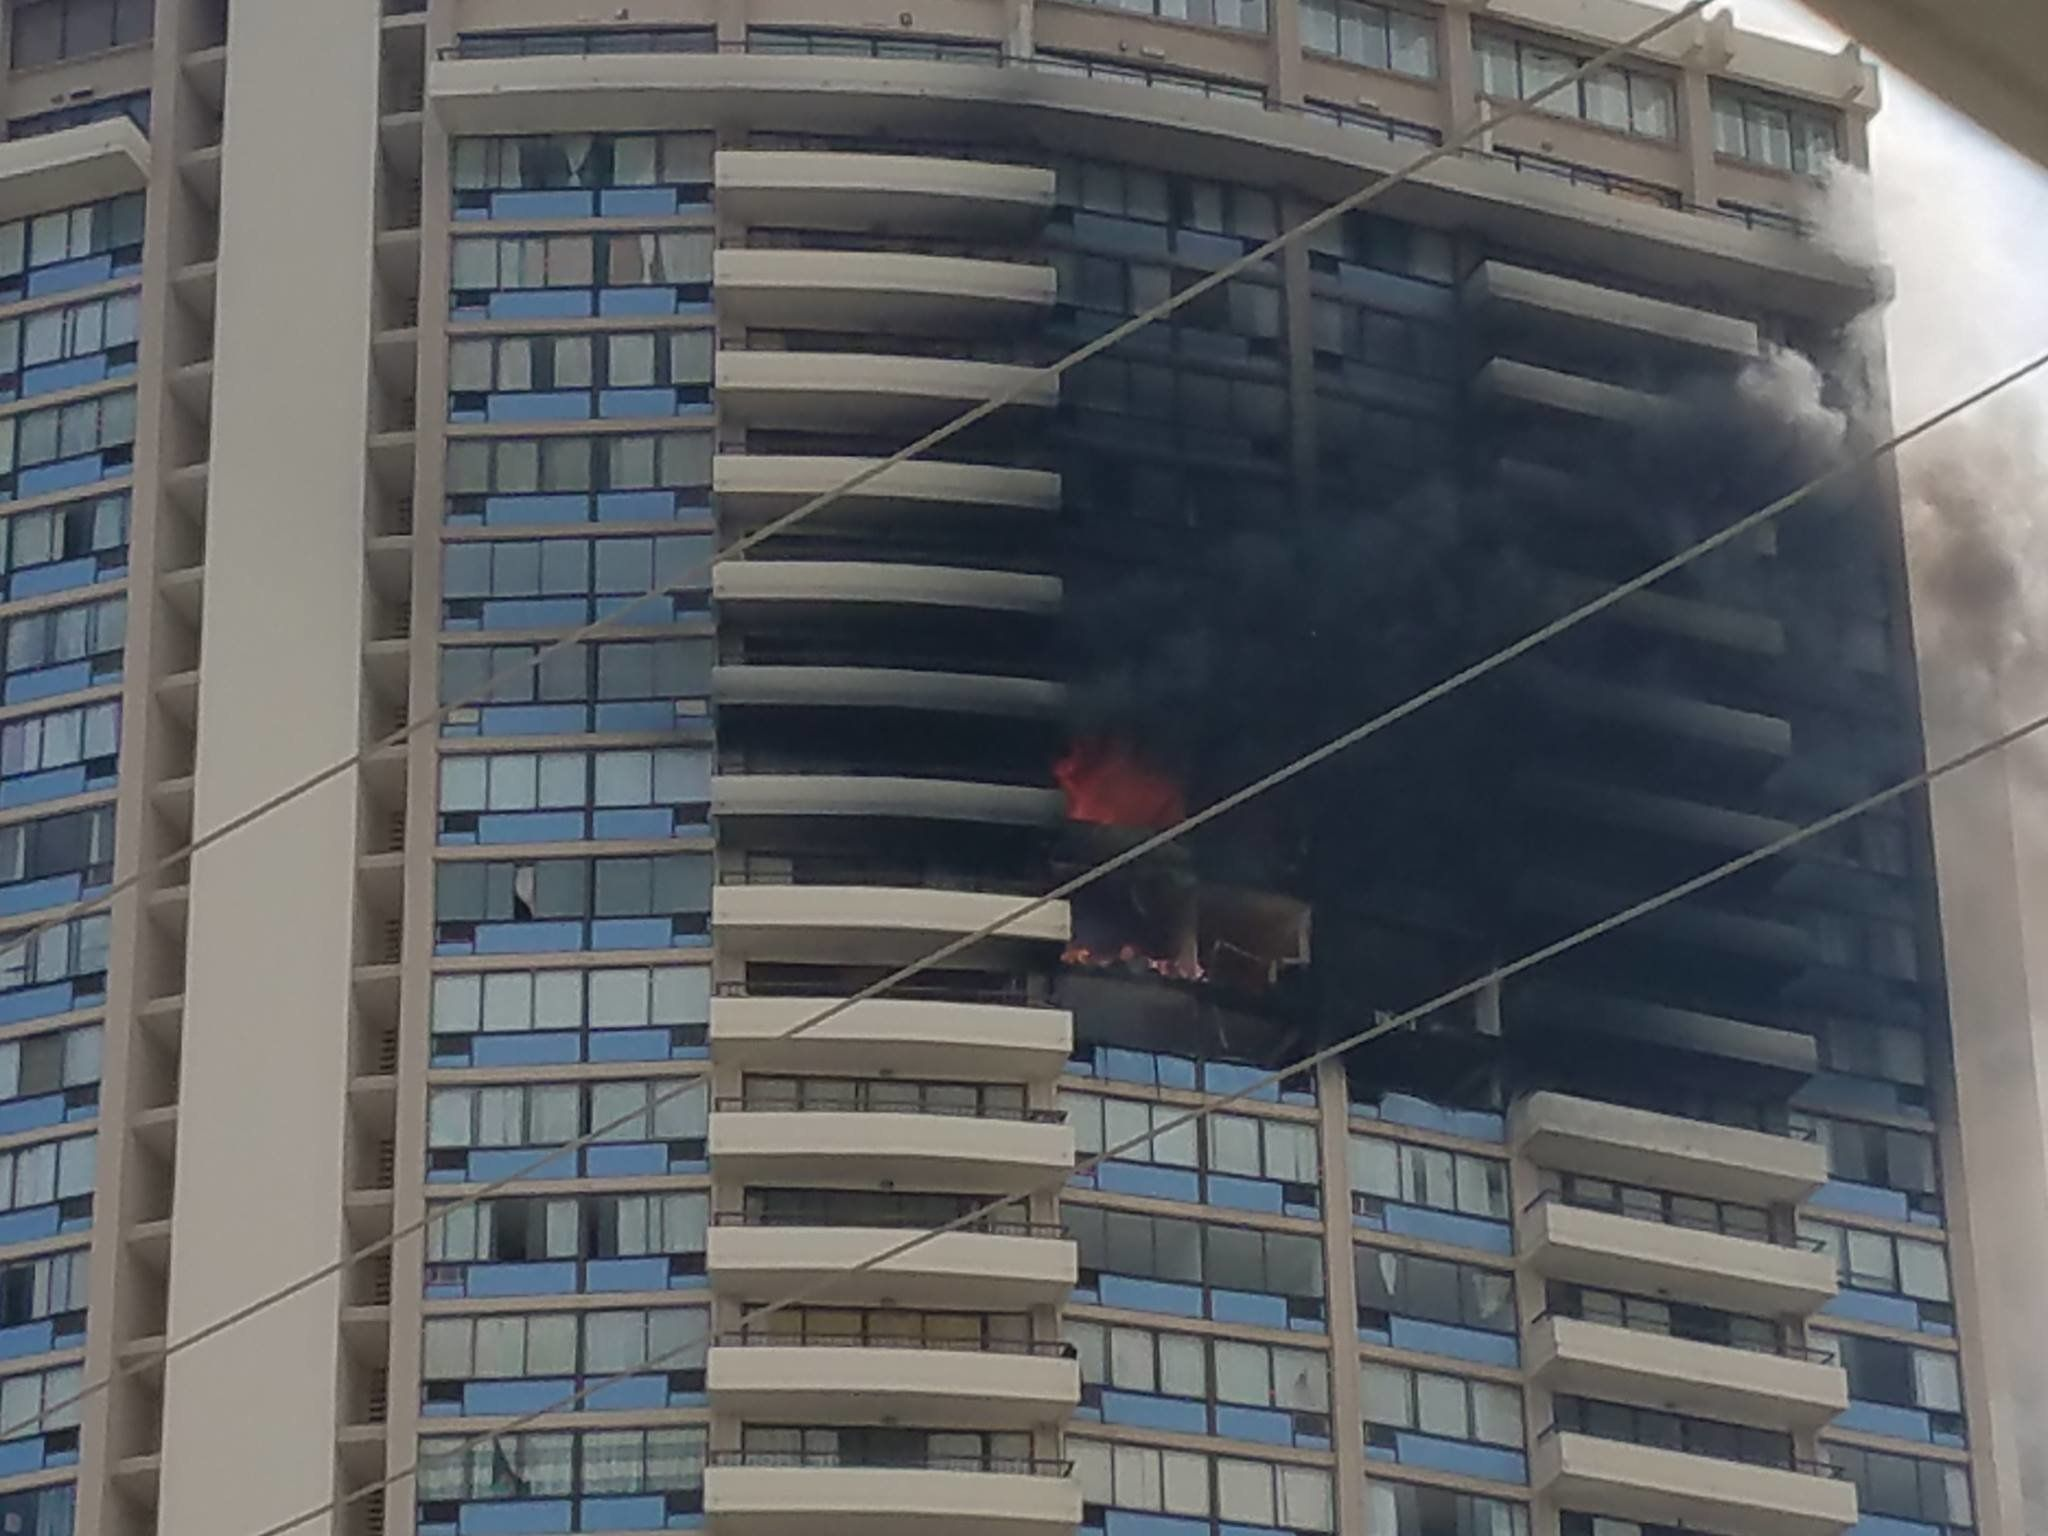 Joel Horiguchi, a resident of Marco Polo, took this photo of the building on fire about 4:50 p.m. local